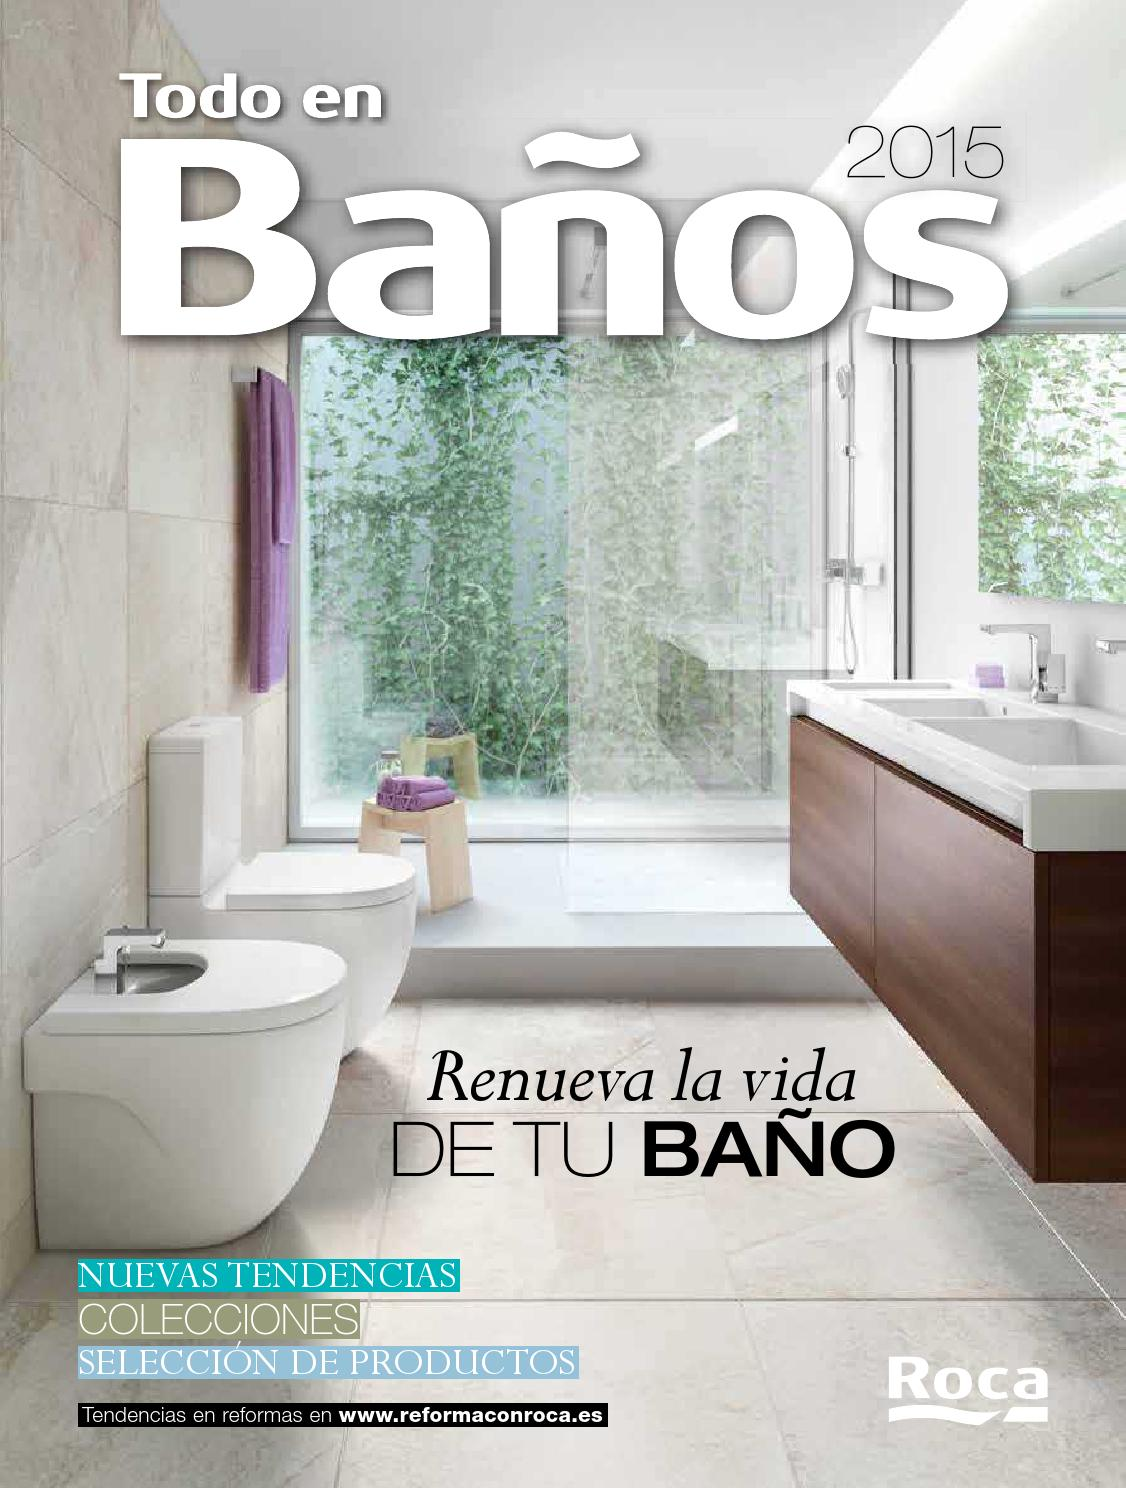 Todo en ba os 2015 by losdescuentos issuu for Inodoros bricomart